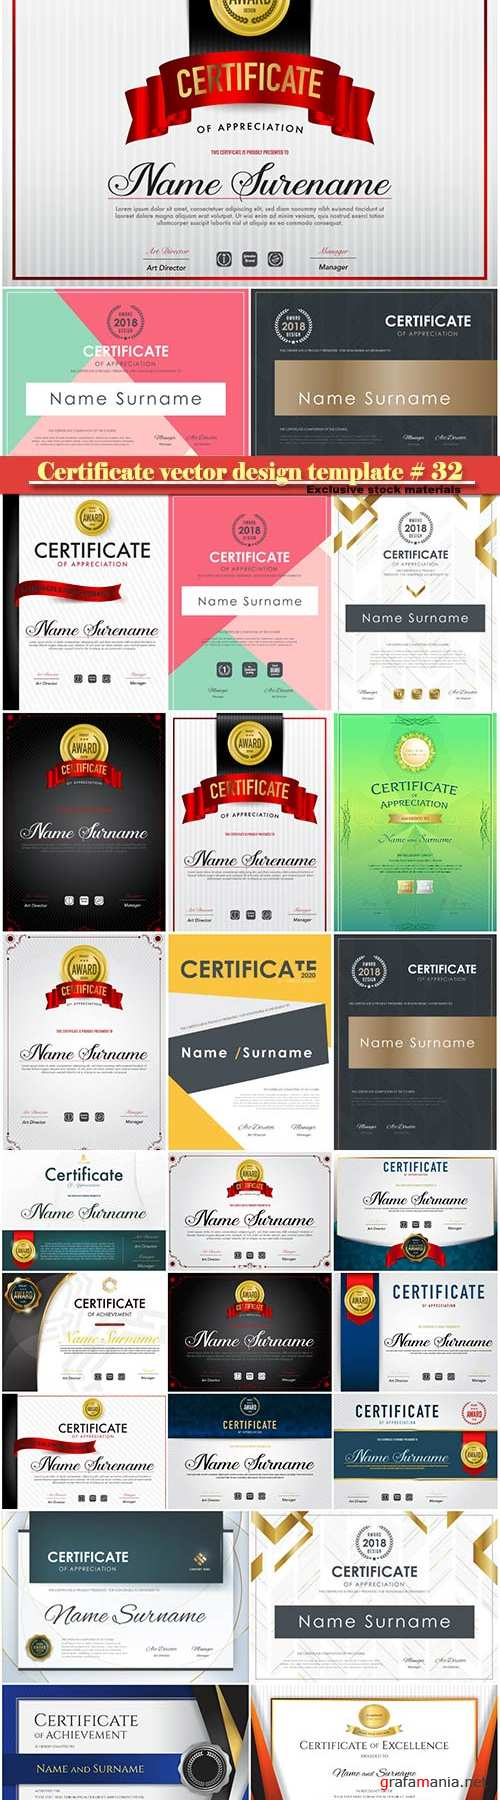 Certificate and vector diploma design template # 32